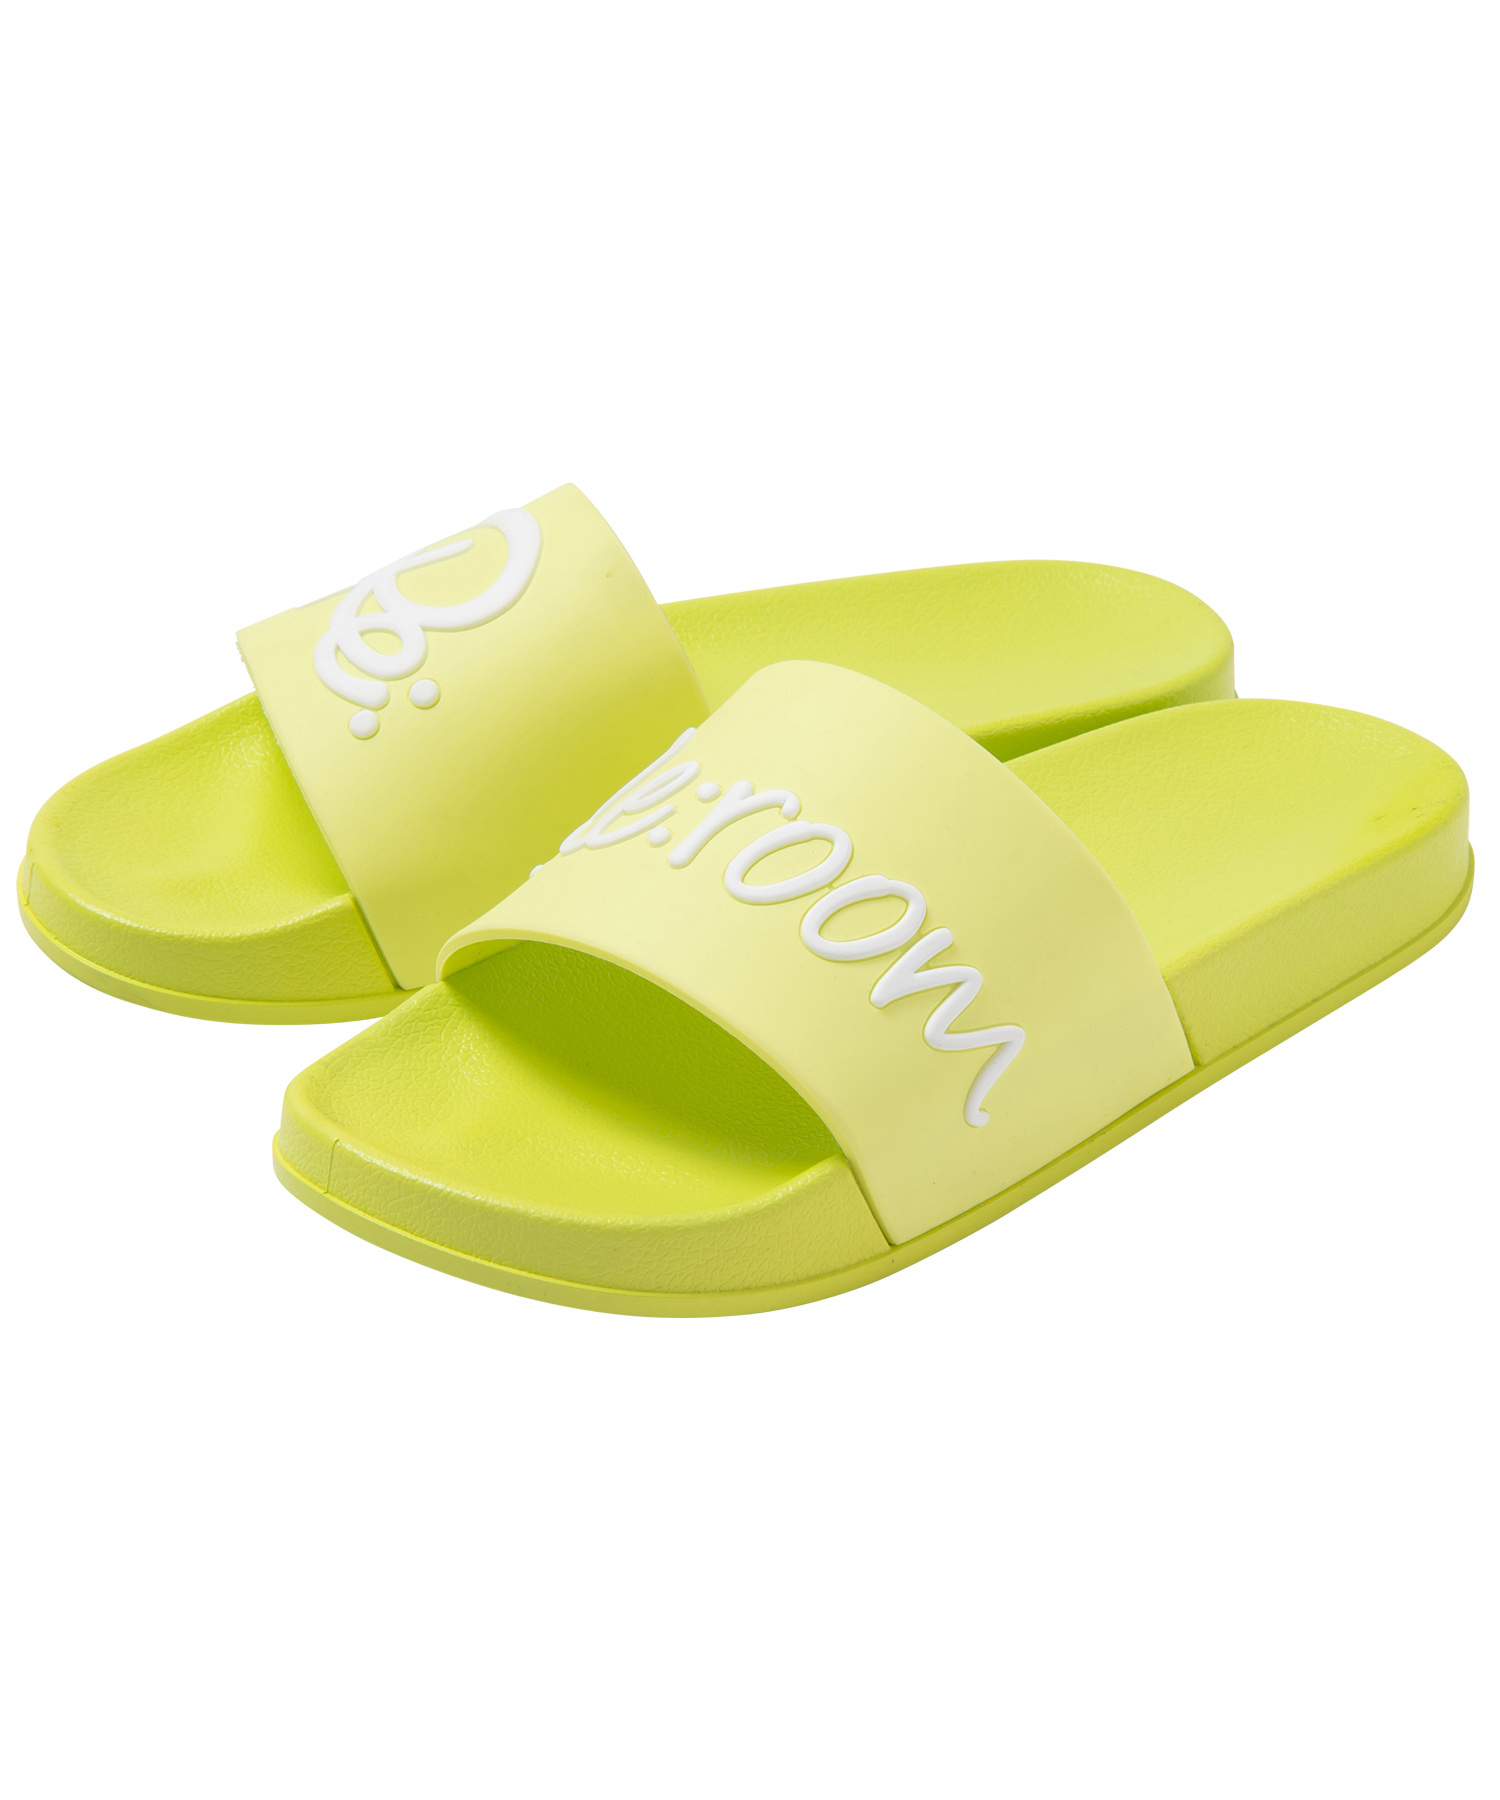 ICON LOGO SHOWER SANDAL[RSH010]